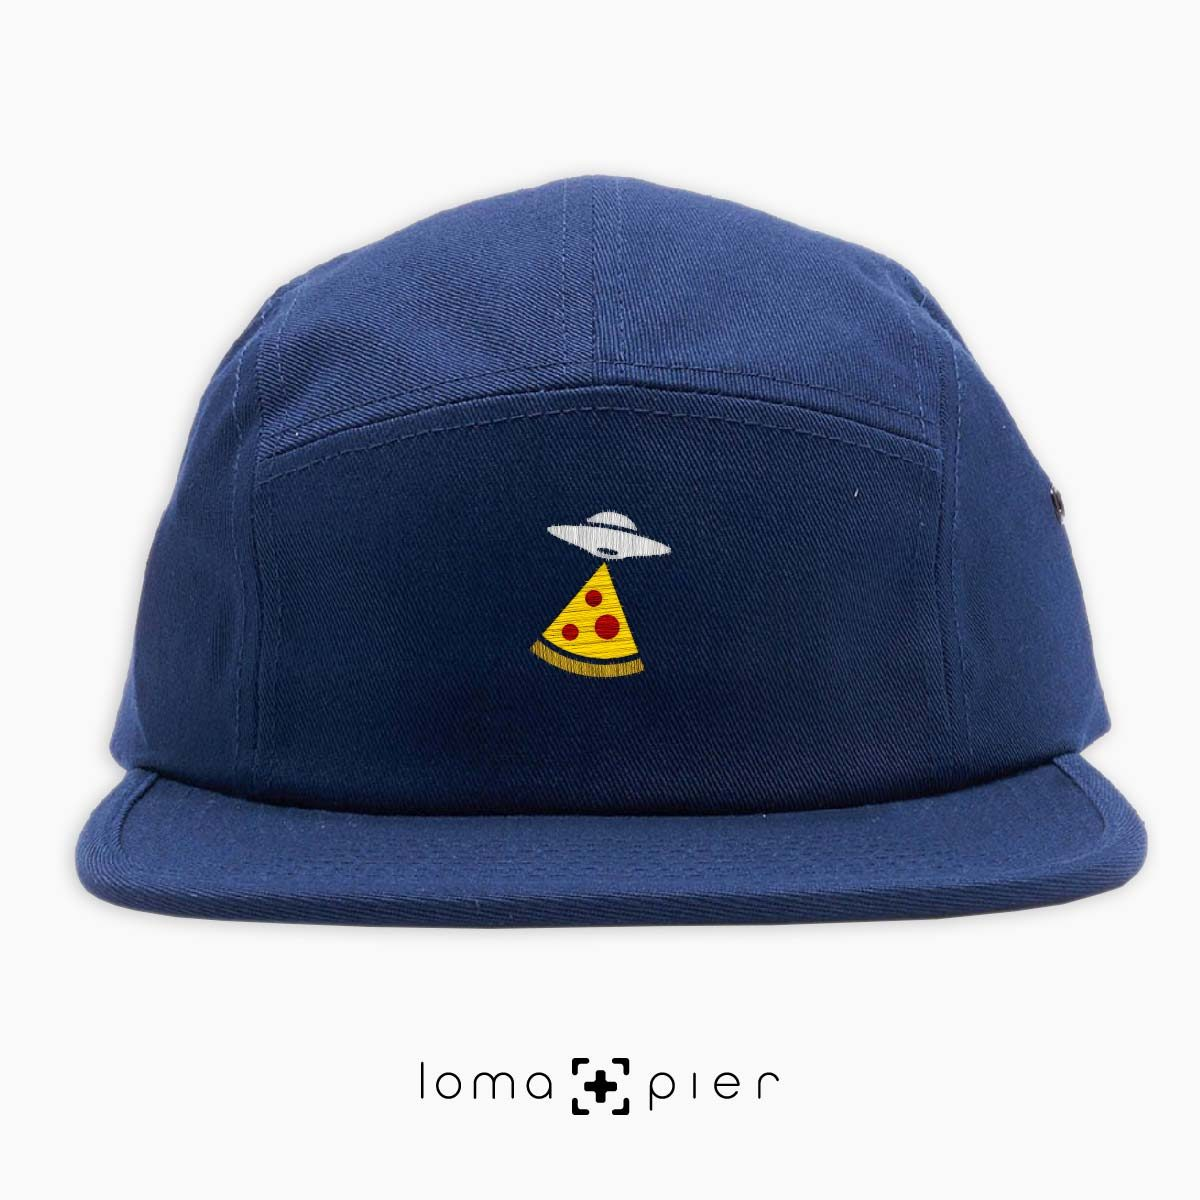 UFO PIZZA icon embroidered on a navy blue cotton 5-panel hat with multicolor thread by loma+pier hat store